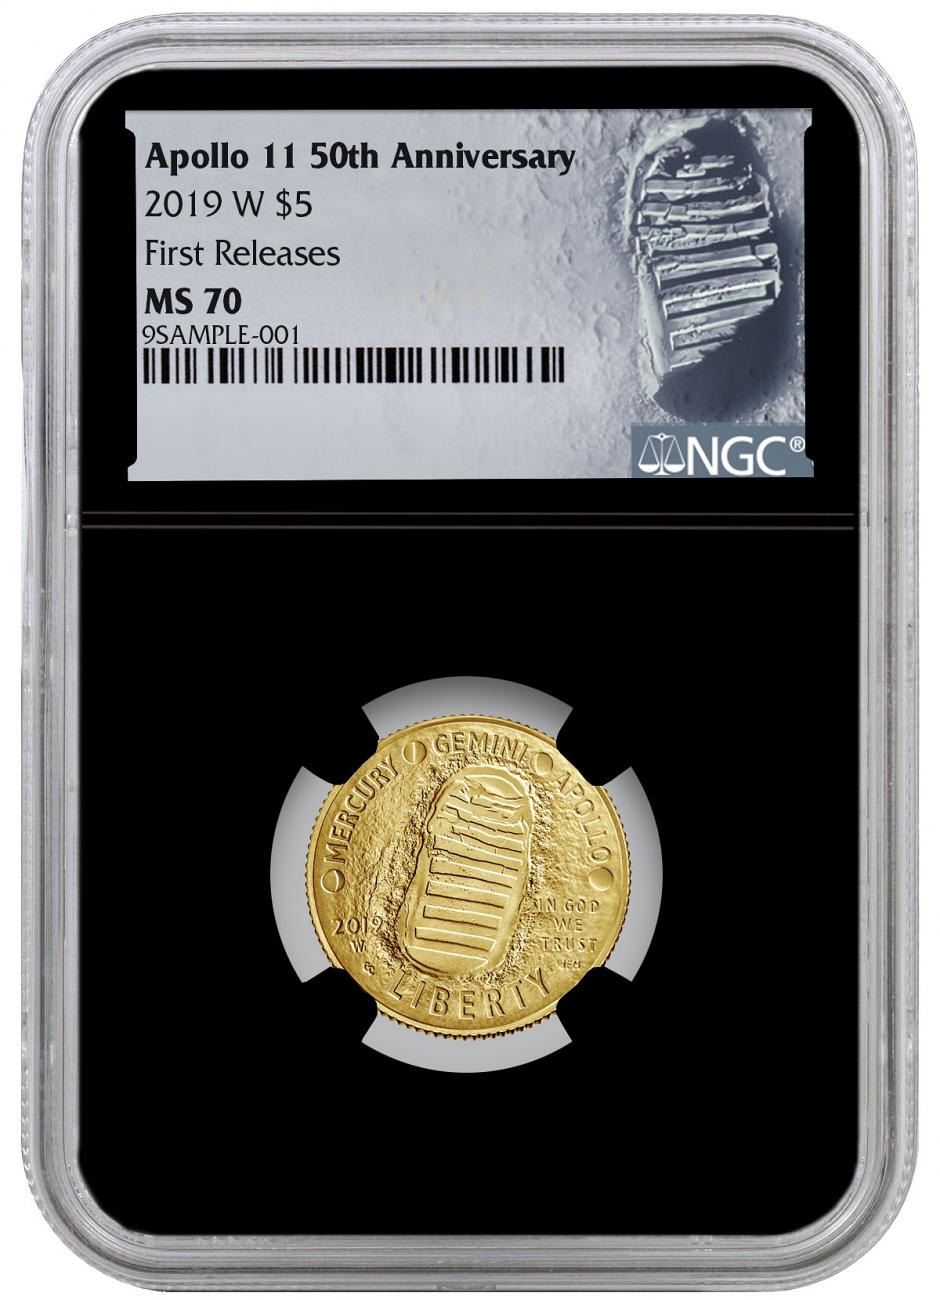 2019-W Apollo 11 50th Anniversary $5 Gold Commemorative Coin NGC MS70 FR Black Core Holder Moon Label